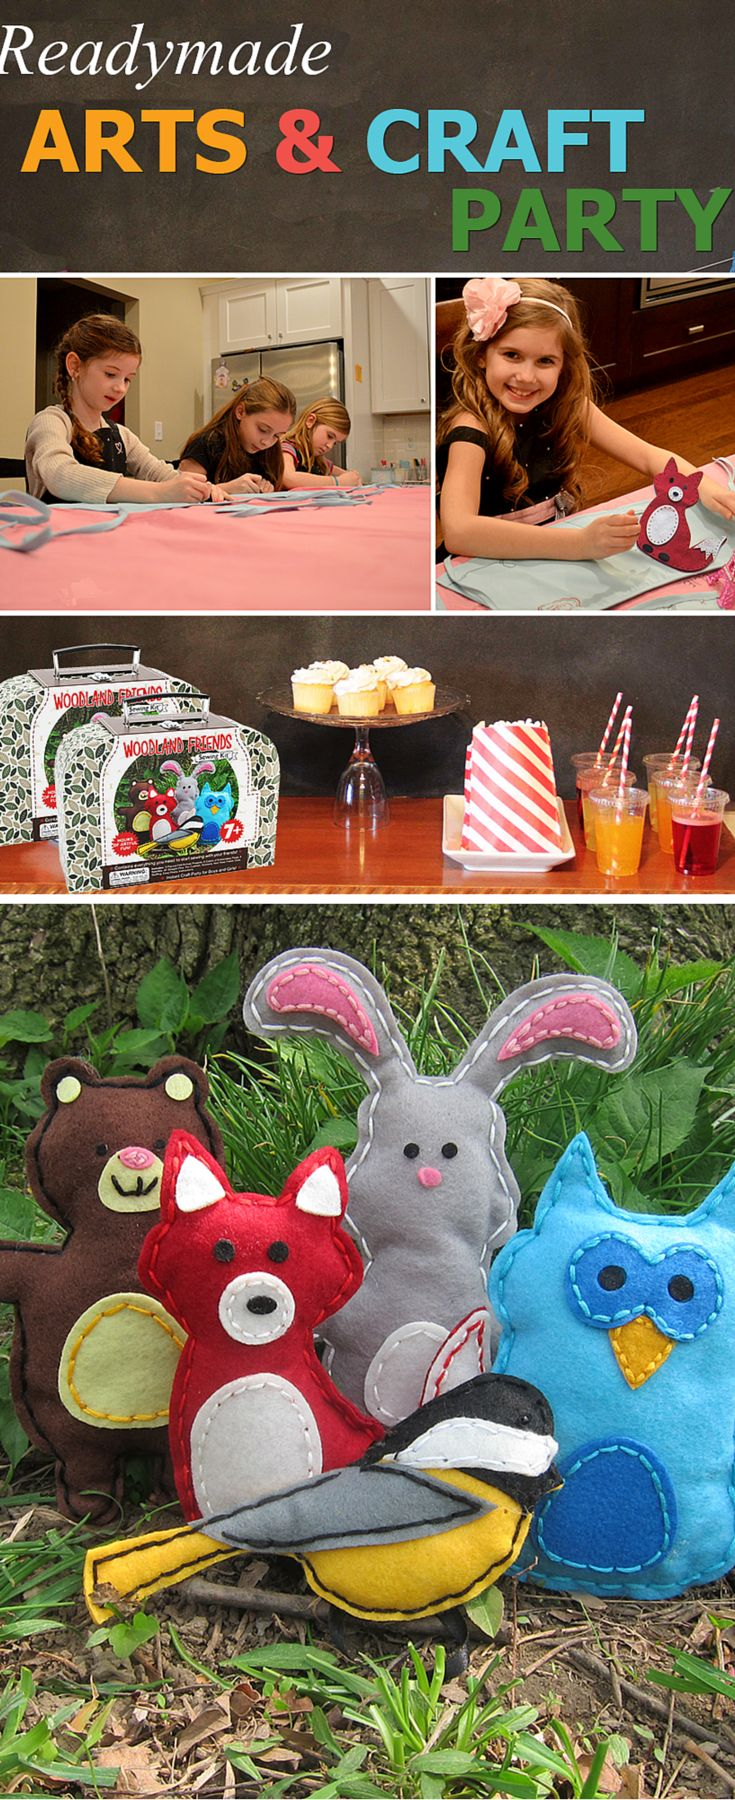 Arts and craft kits - Find This Pin And More On Diy Kids Sewing Crafts Kits For Boys Girls Woodland Sewing Projects Teaching Kids How To Sew